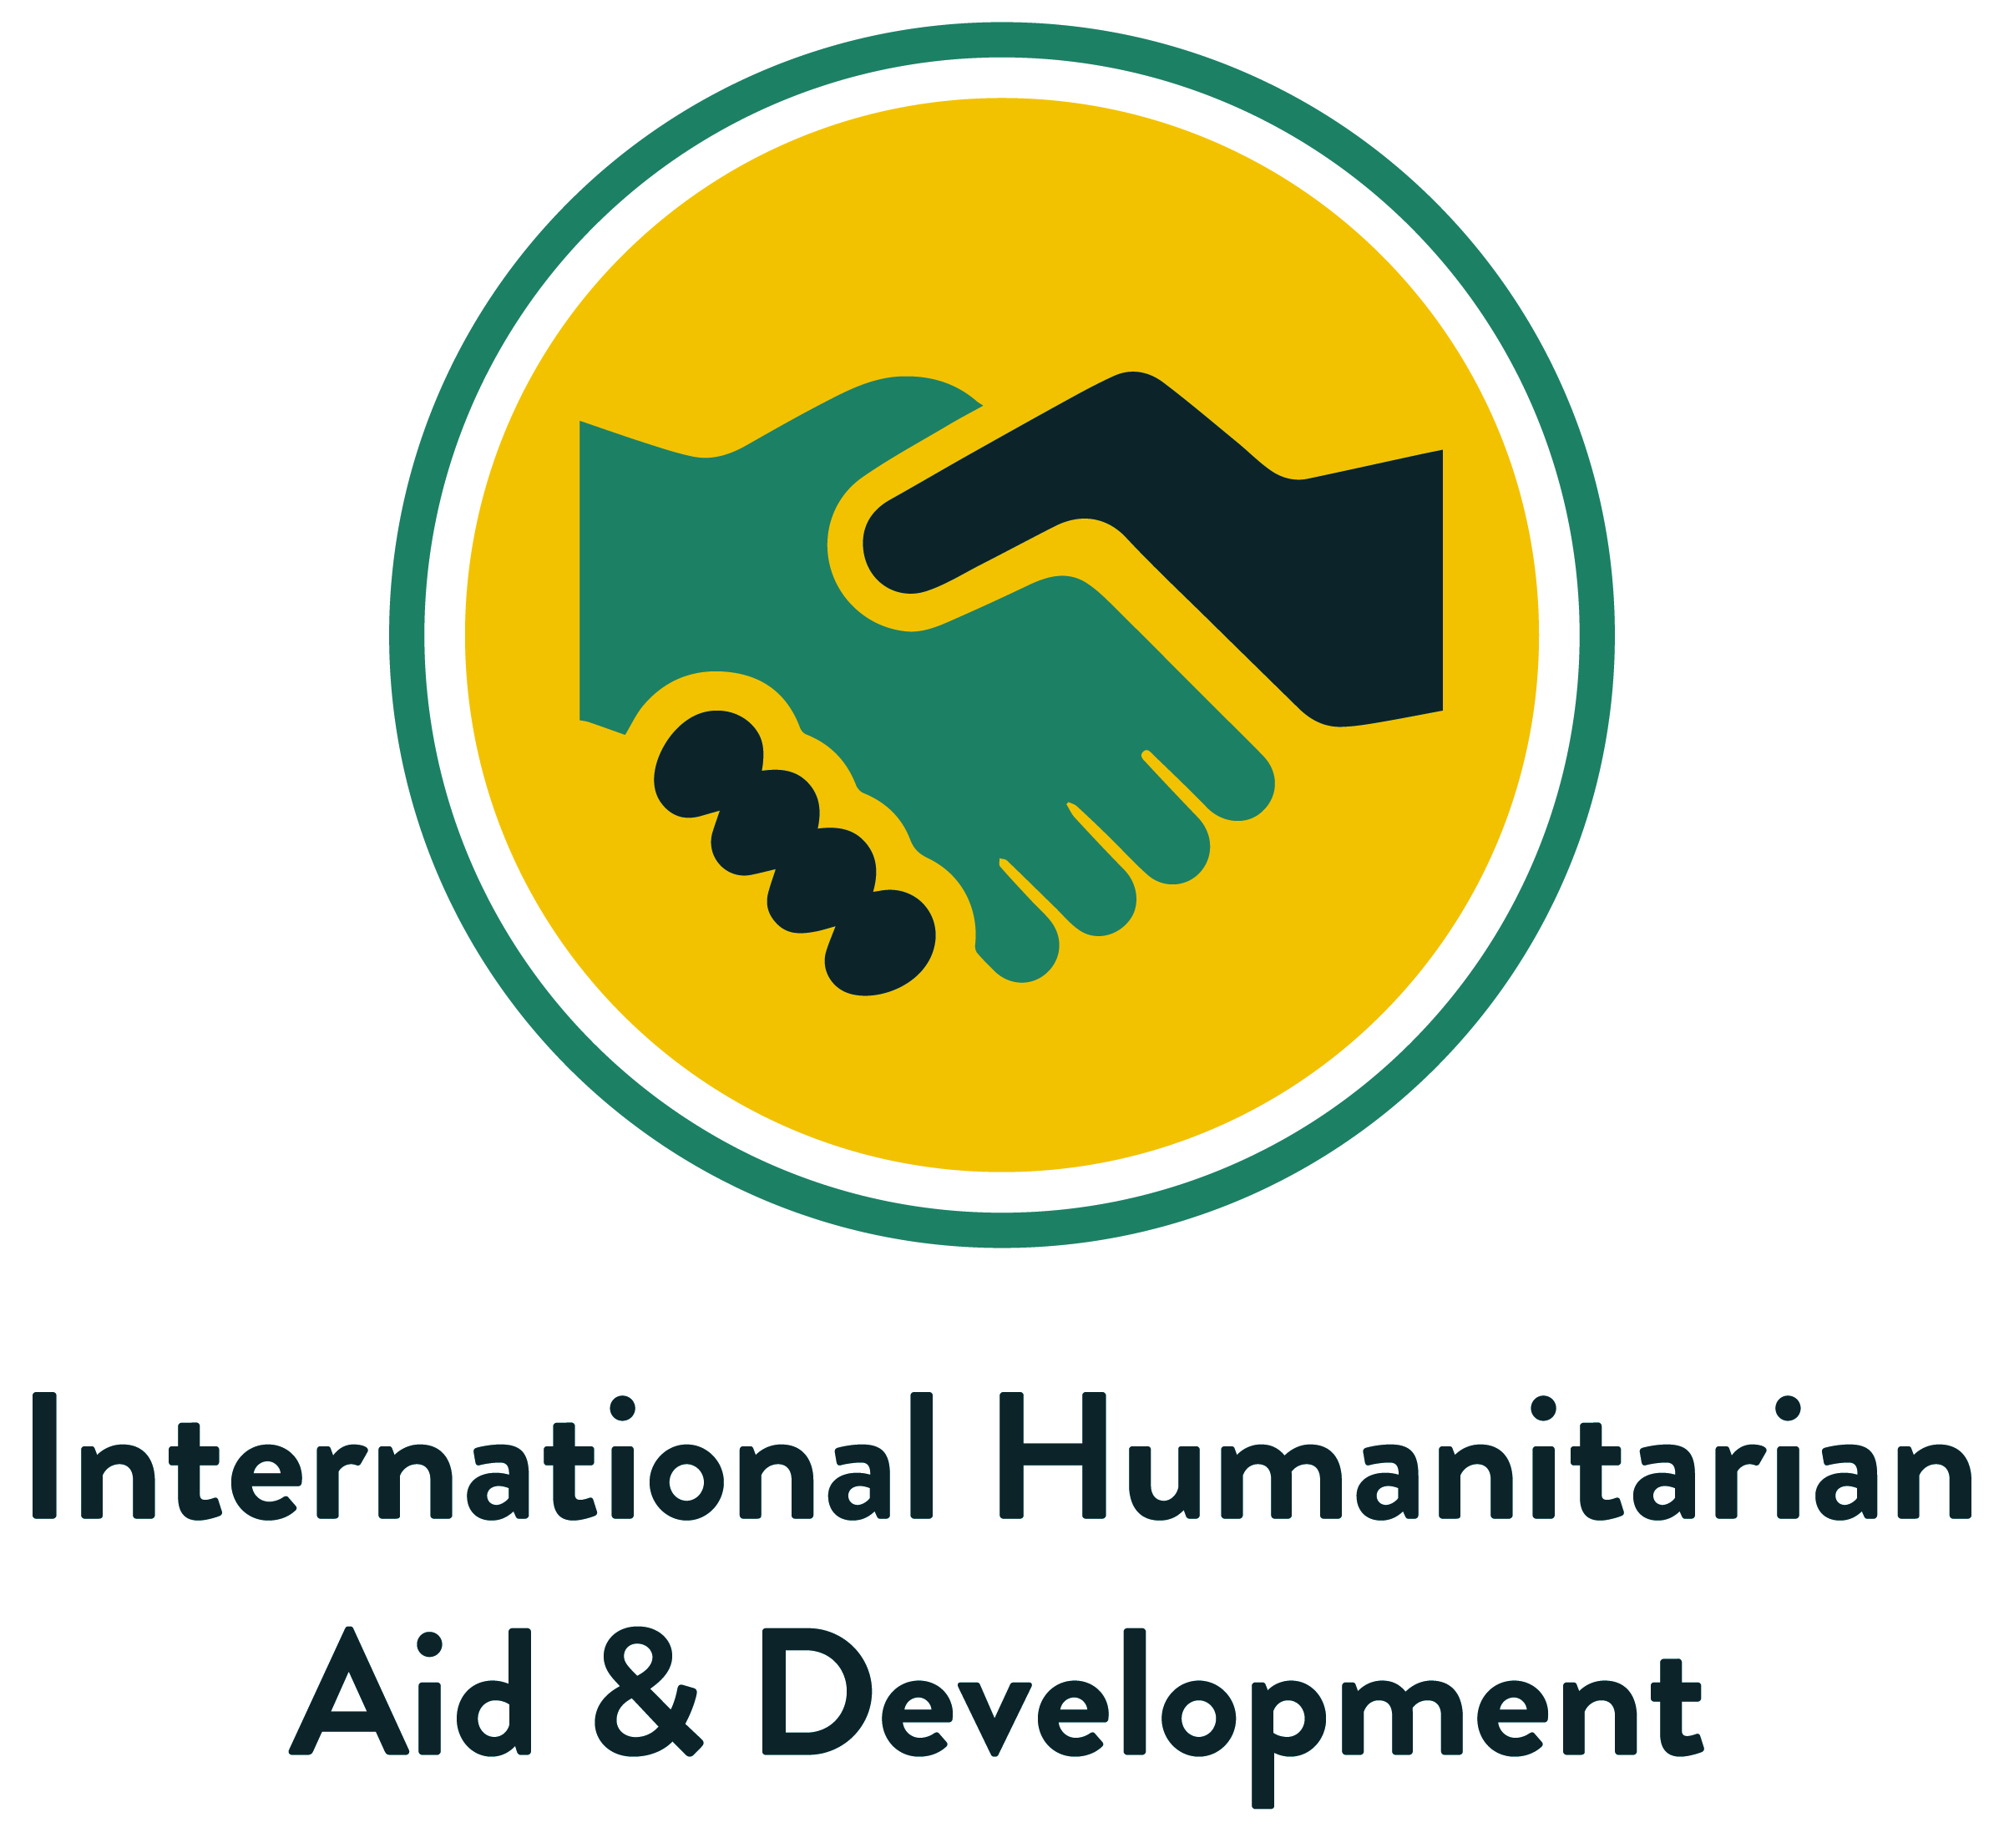 International Humanitarian Aid & Development